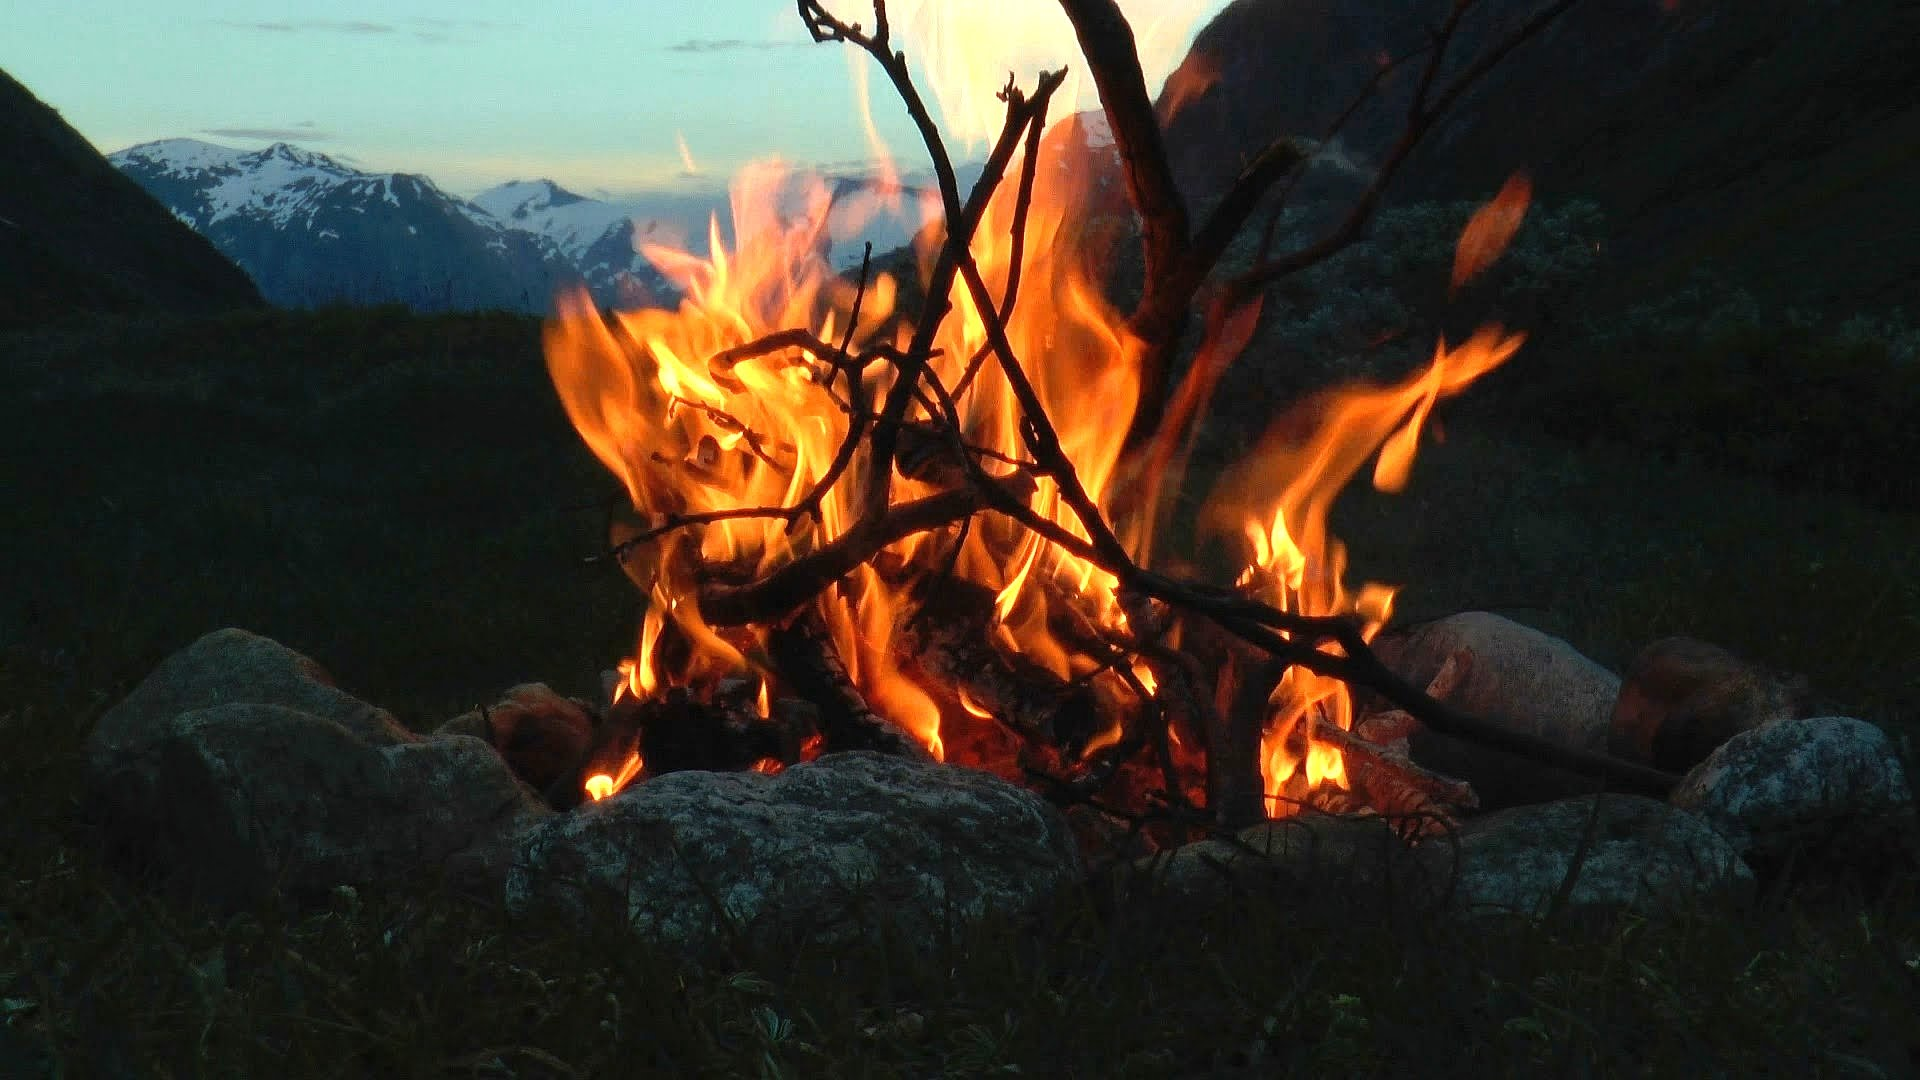 Drawn camp fire fireplace Mountain River Campfire River Crackling